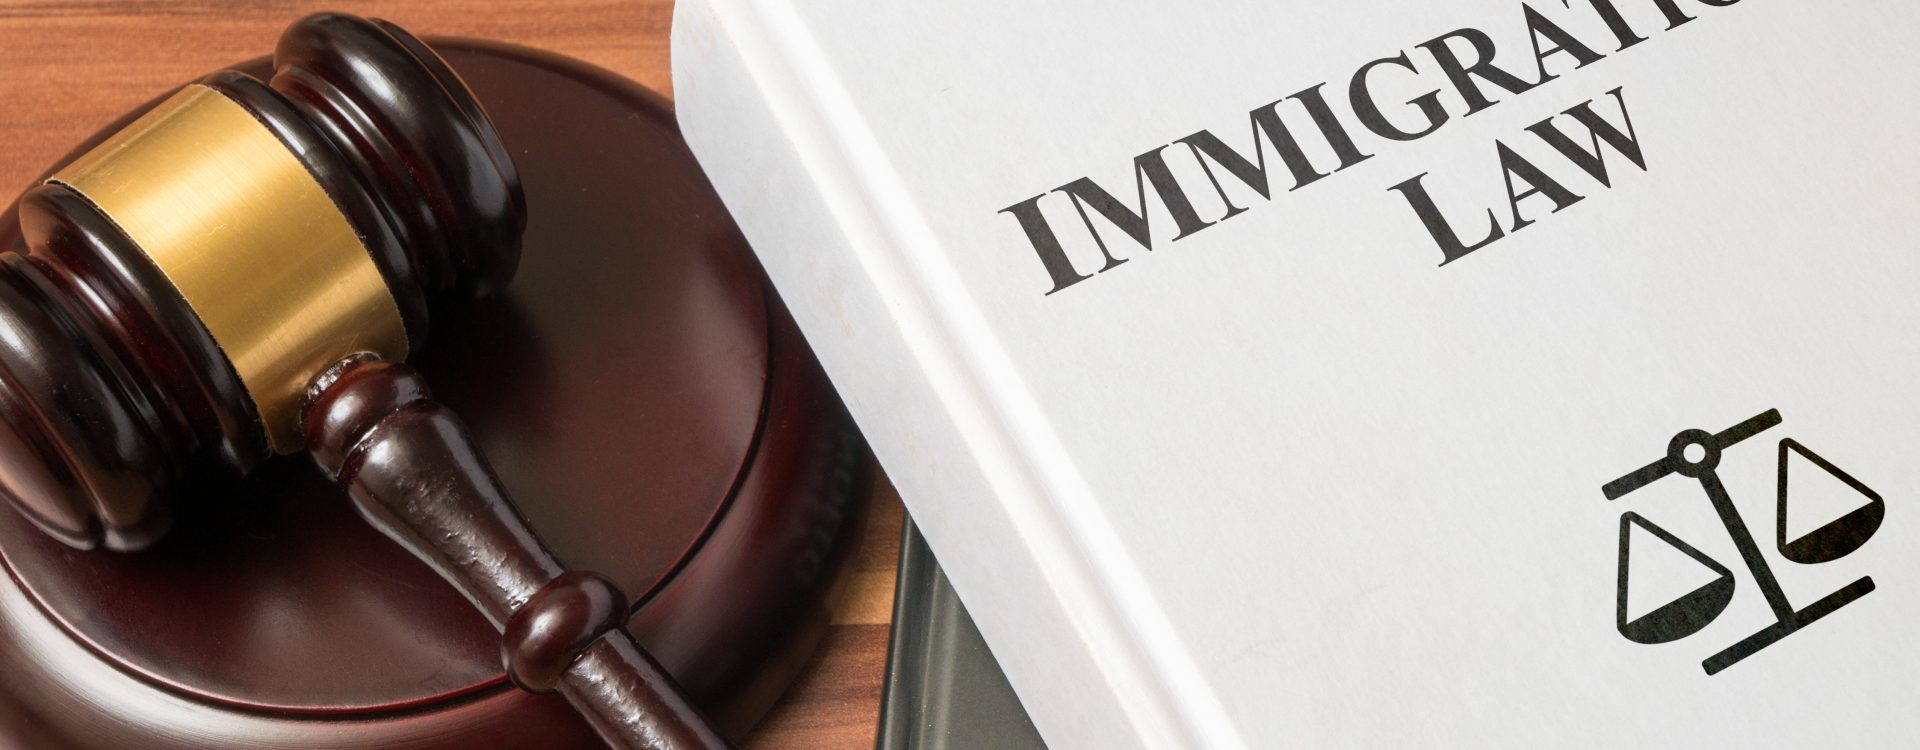 NEW IMMIGRATION LAW PROPOSED BY SENATE; AWAITING RESPONSE FROM THE HOUSE OF REPRESENTATIVES